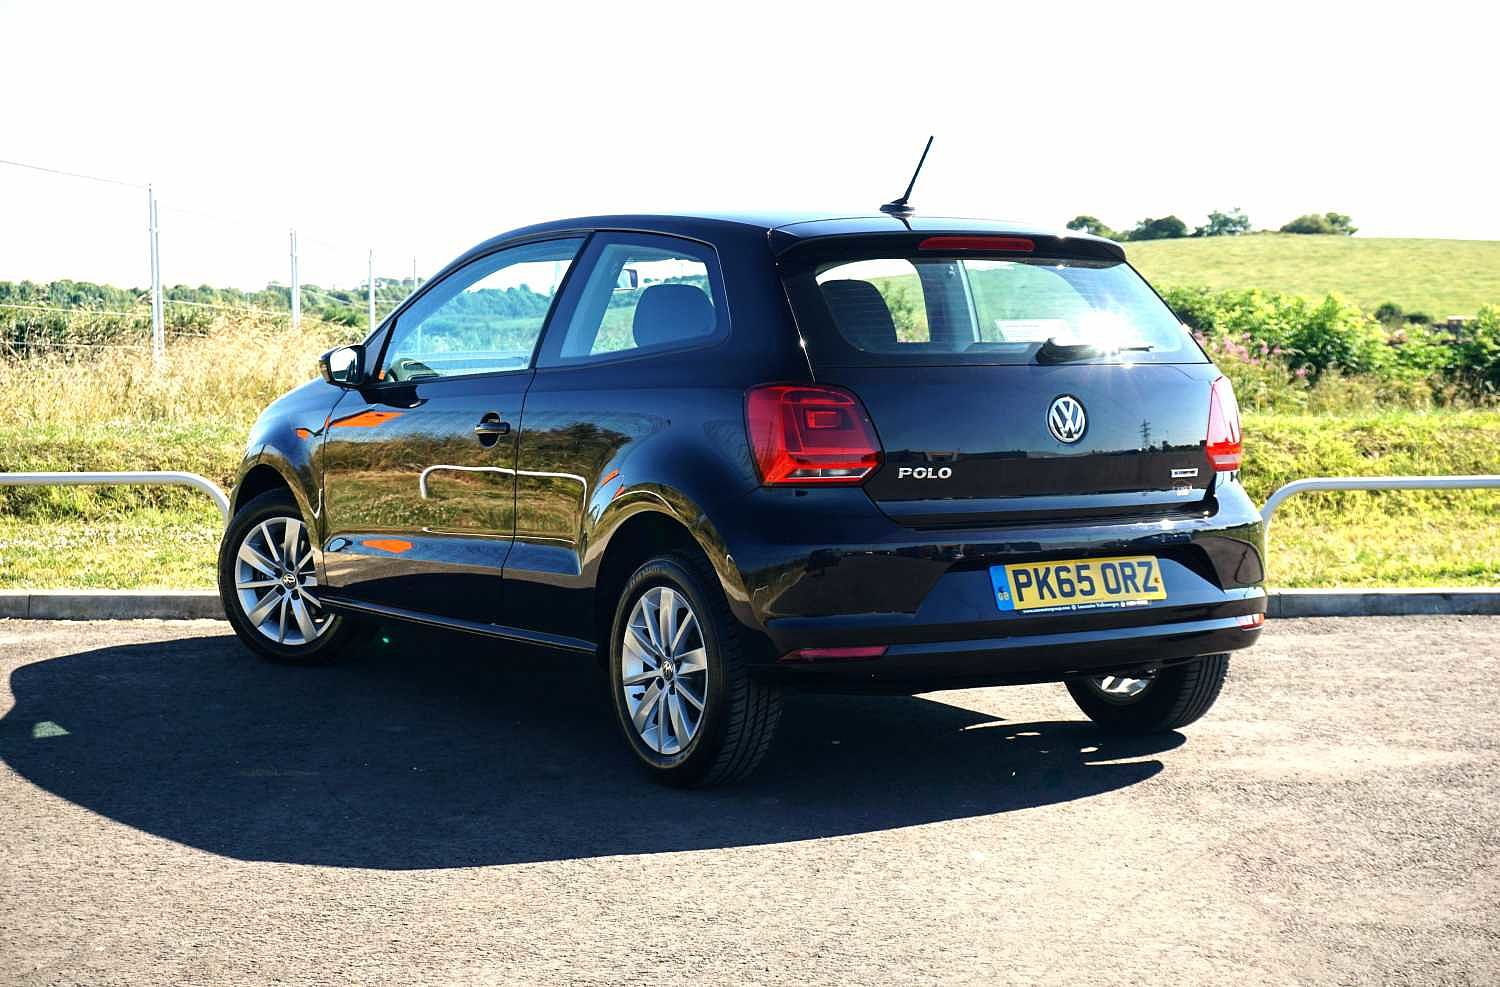 Volkswagen Polo 1.0 SE 60PS